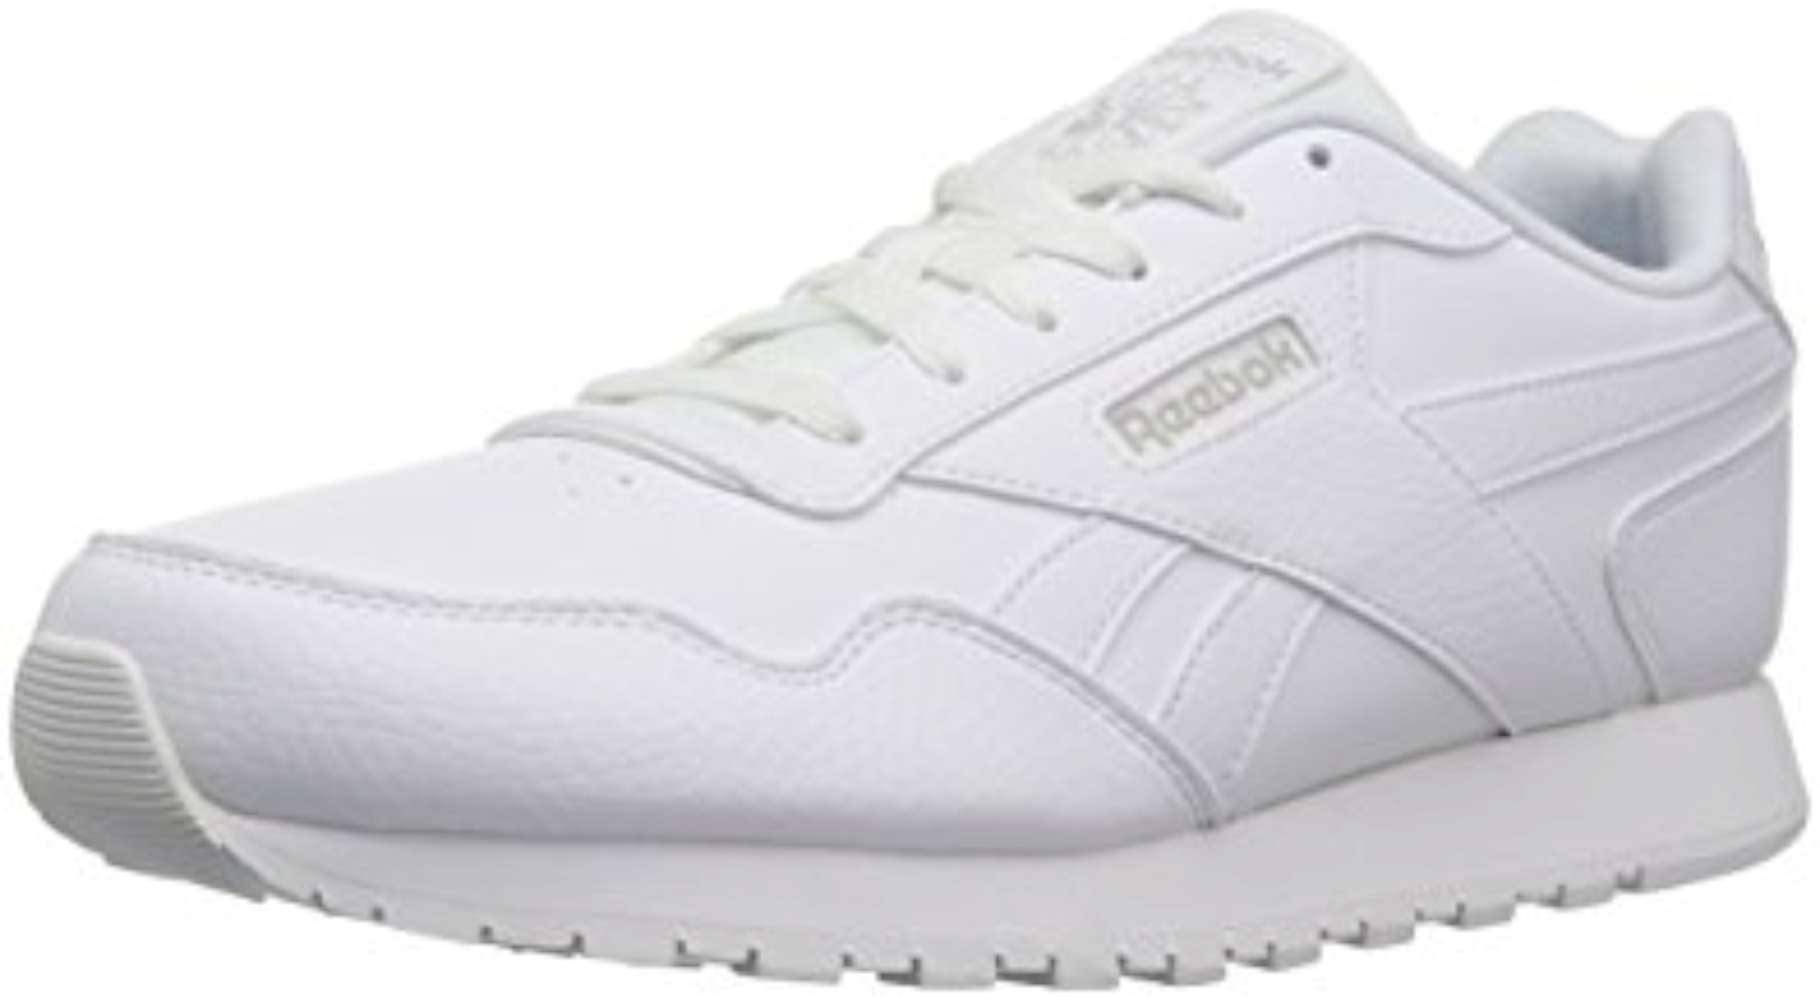 60f9af411 Reebok Womens Classic Harman Low Top Lace Up Running Sneaker, White, Size  9.0 q5